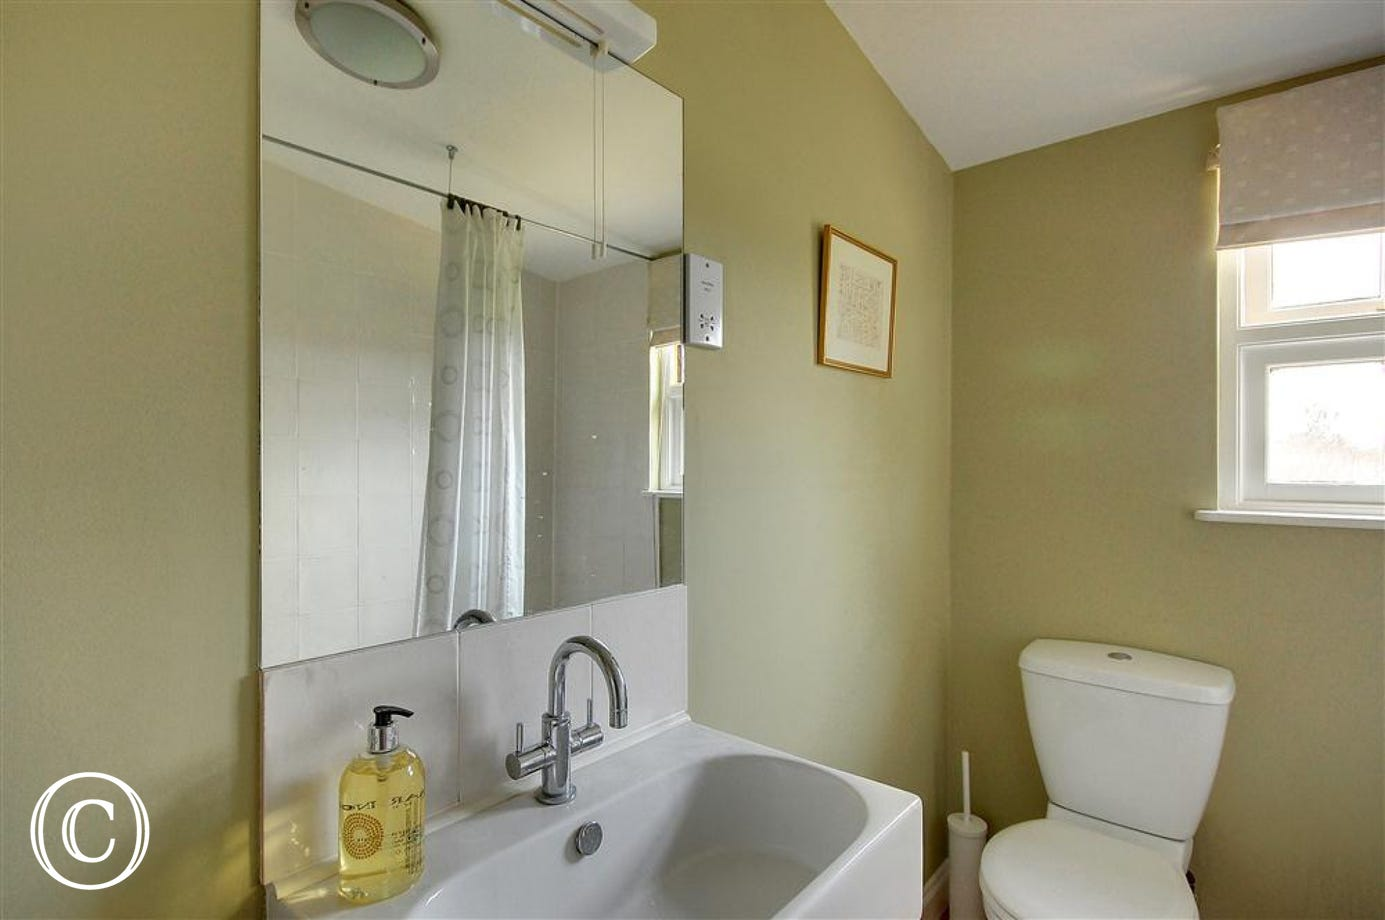 A relaxing bathroom is also provided in this conversion for bathing convenience.